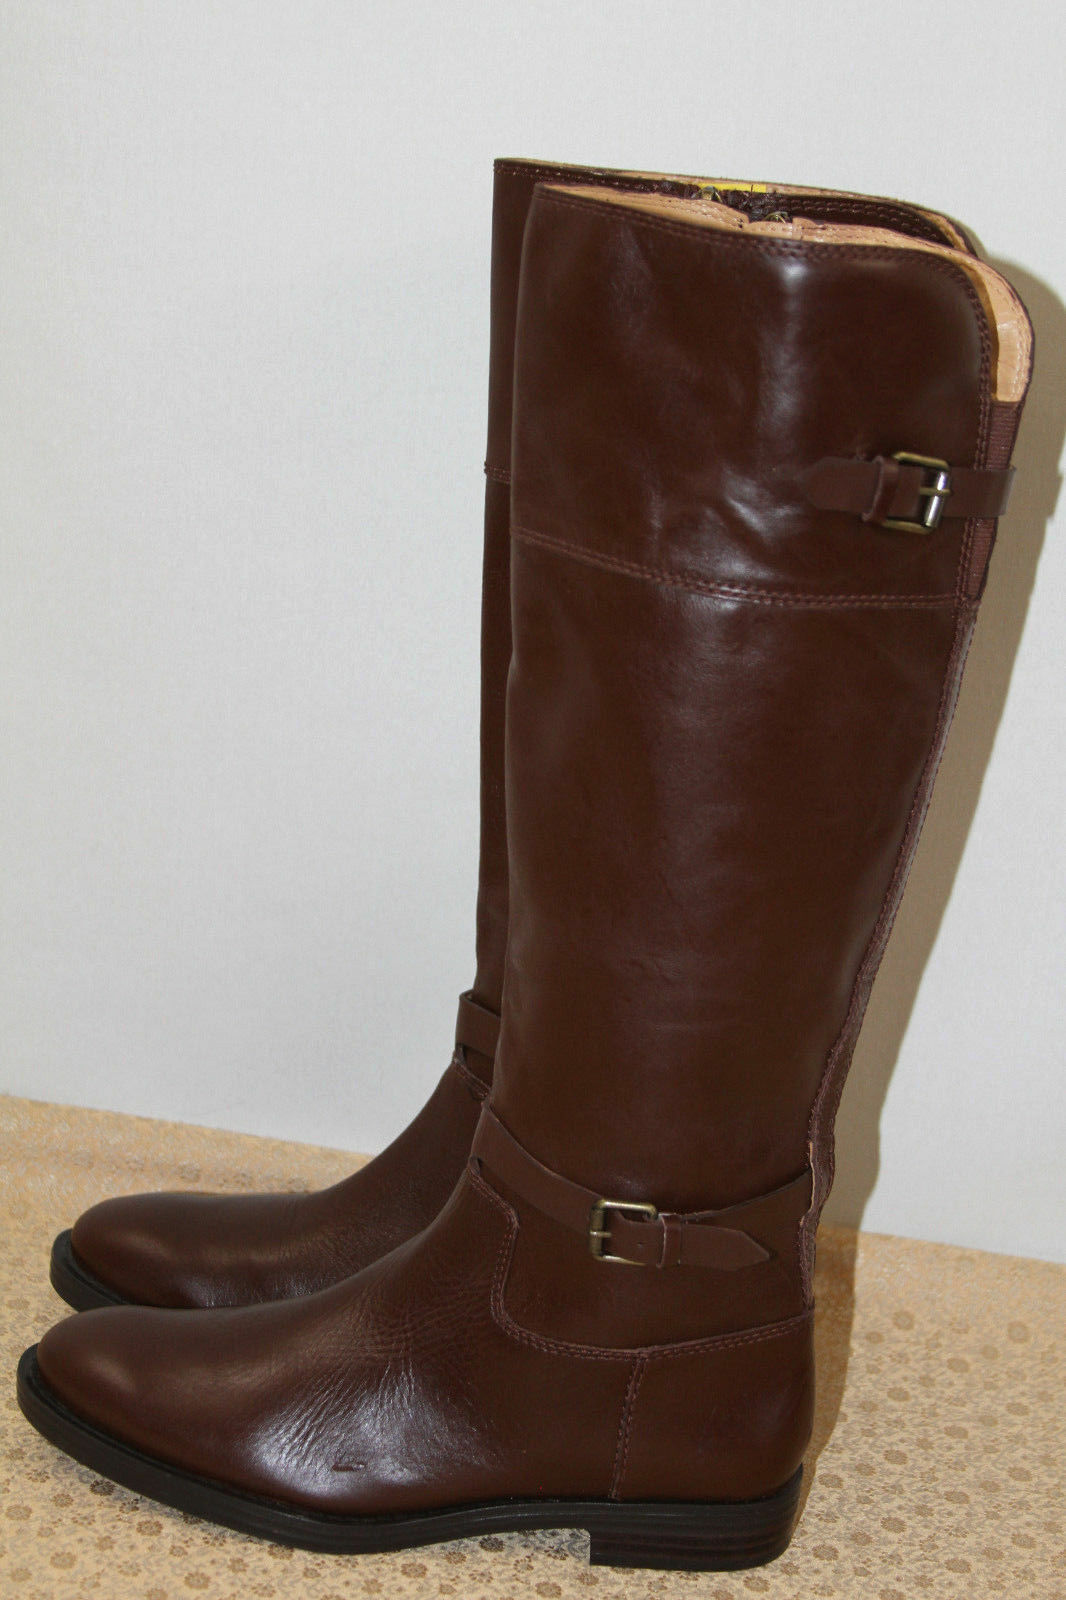 NEW     ENZO ANGIOLINI EERO BROWN LEATHER TALL BOOTS     SZ 7